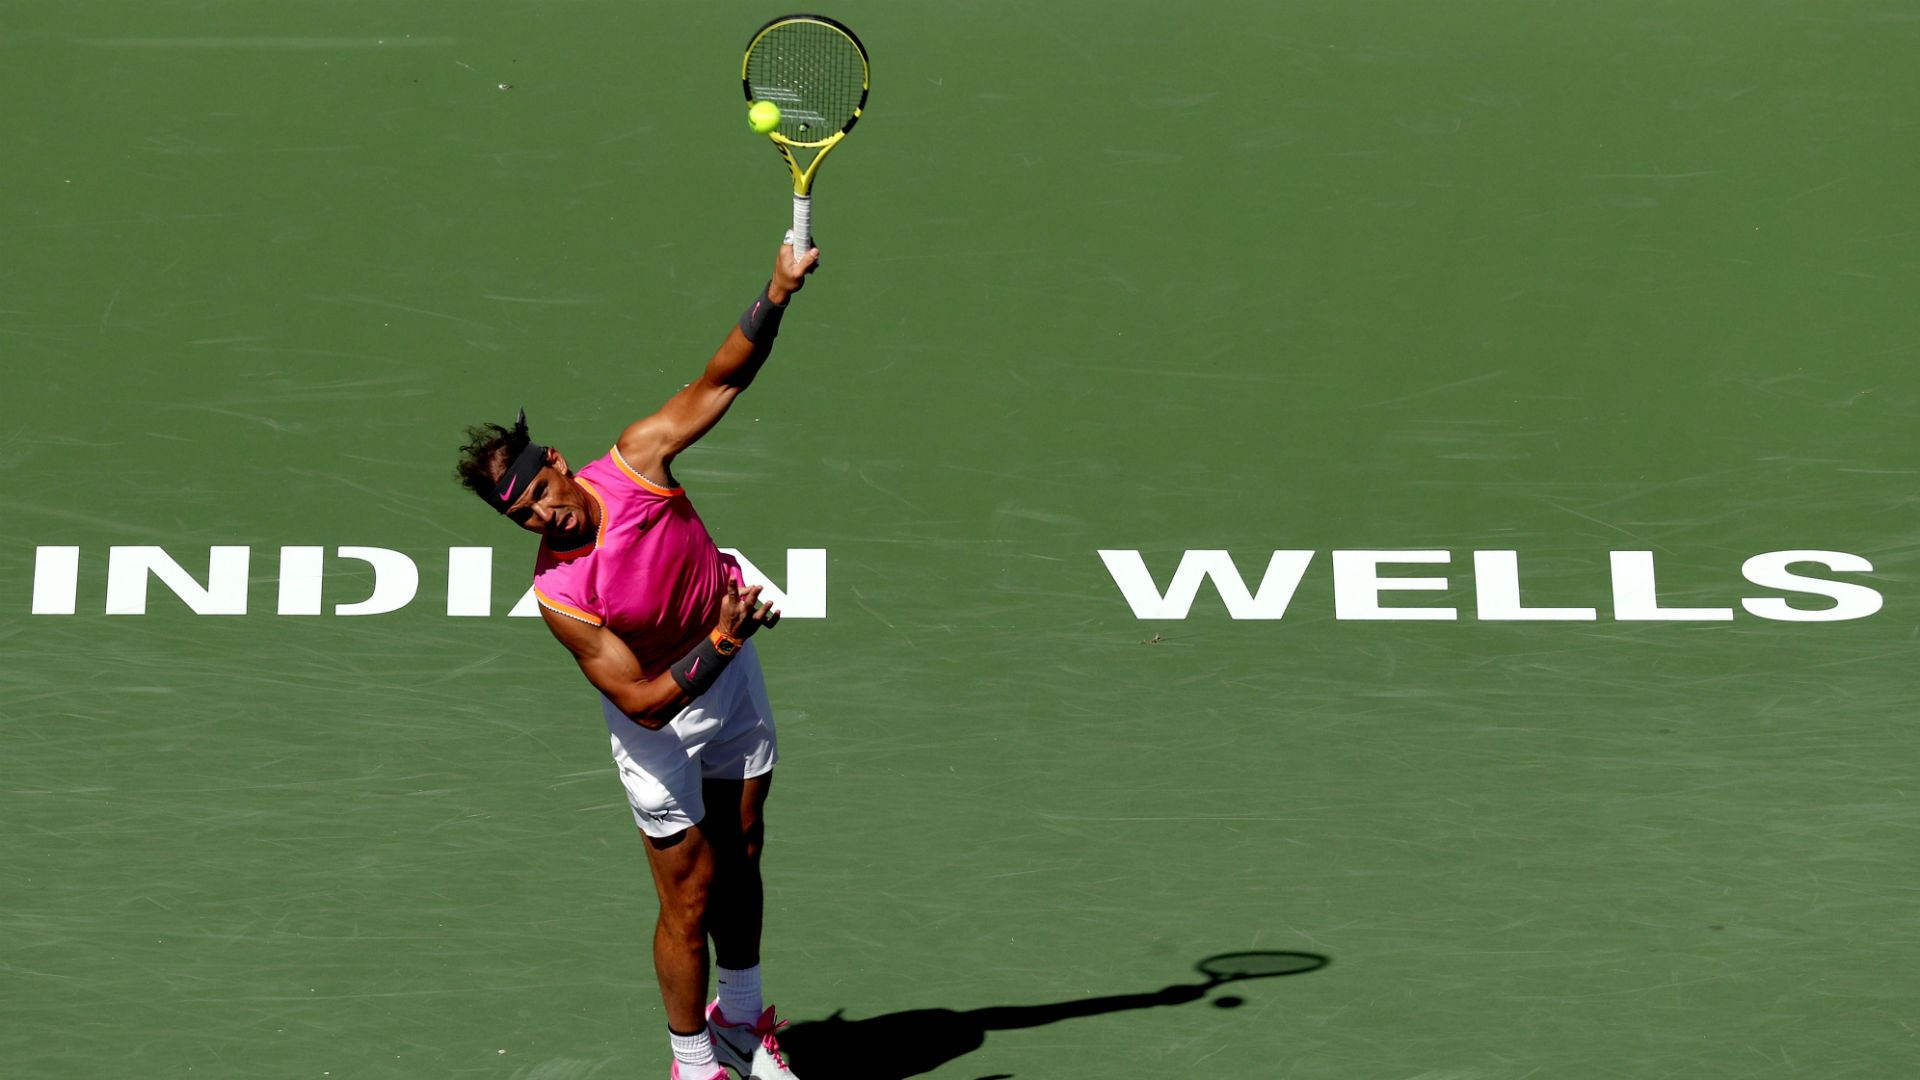 Nadal 'so sad' after Indian Wells cancelled over coronavirus fears